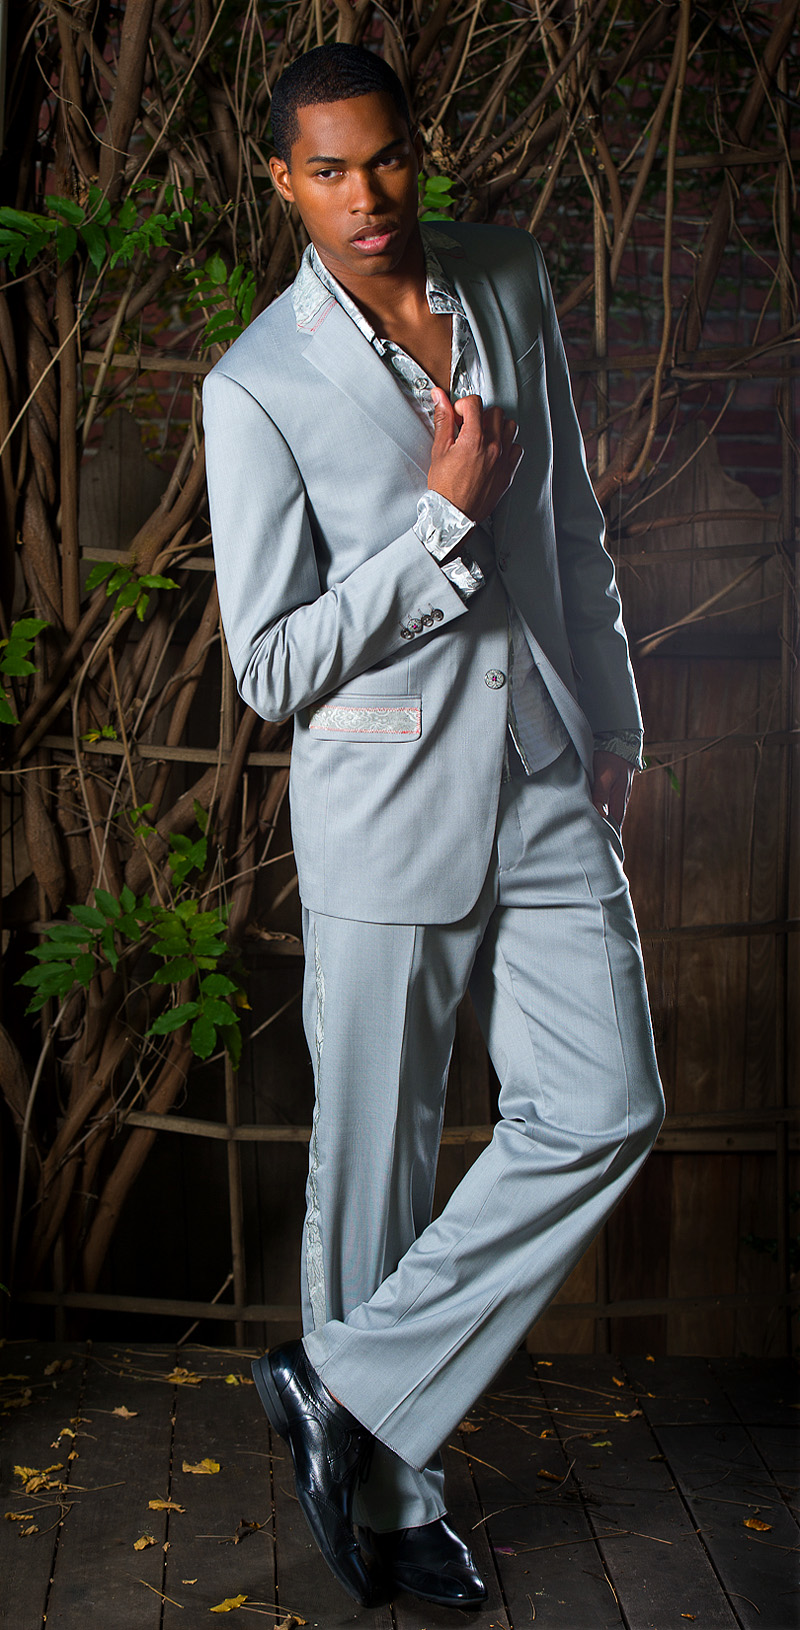 The Intown Uptown Inn, Washington, DC Nov 09, 2011 © Dave McIntosh Clothing Designer: Stella Bonds - Model: Nick Anthony - Photographer: Dave McIntosh